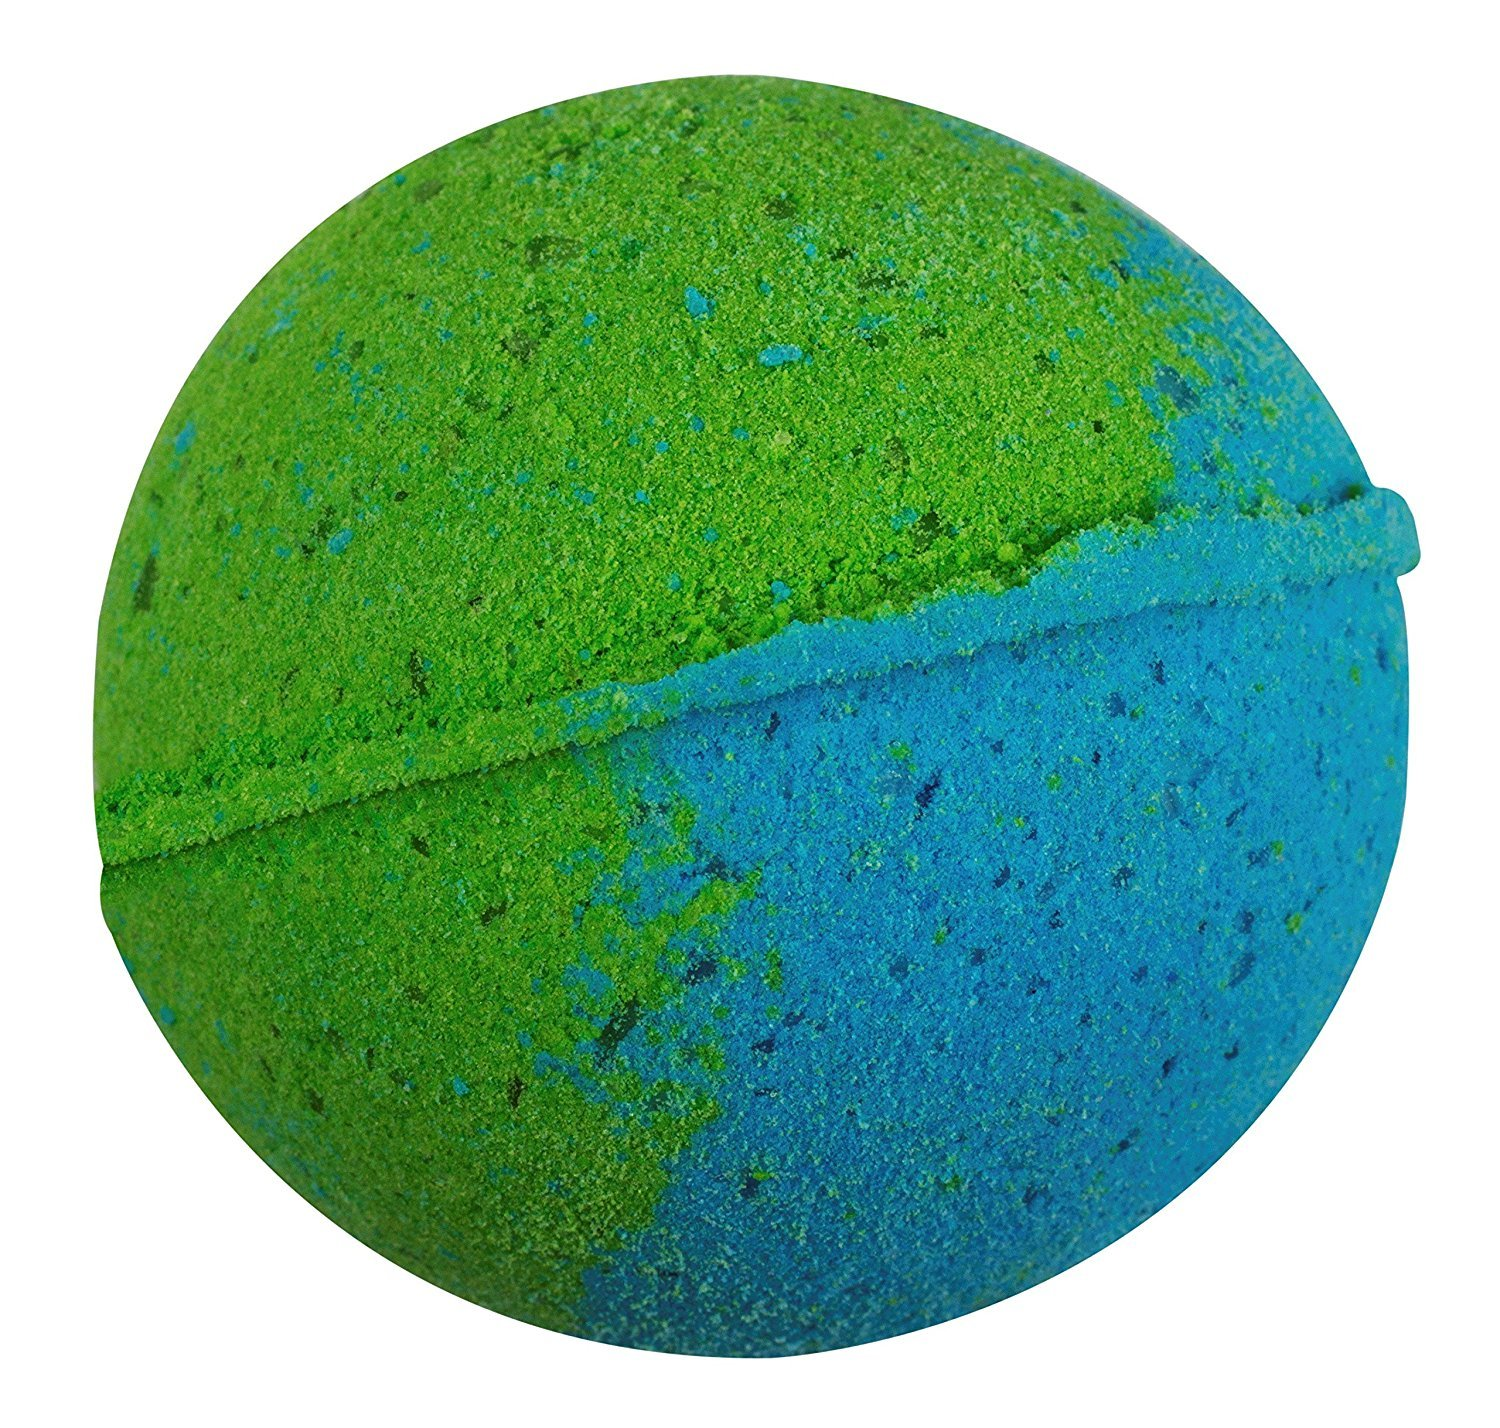 Sense Sation Blue Lavender & Palma Rosa Bath Bomb USA Handmade Ultra Lush Spa Bath Fizzies 4.5 oz. Organic Essential Oil, Fizzy & Colorful, Aromatherapy & Moisturizing, Vegan & Gluten Free Gift Idea